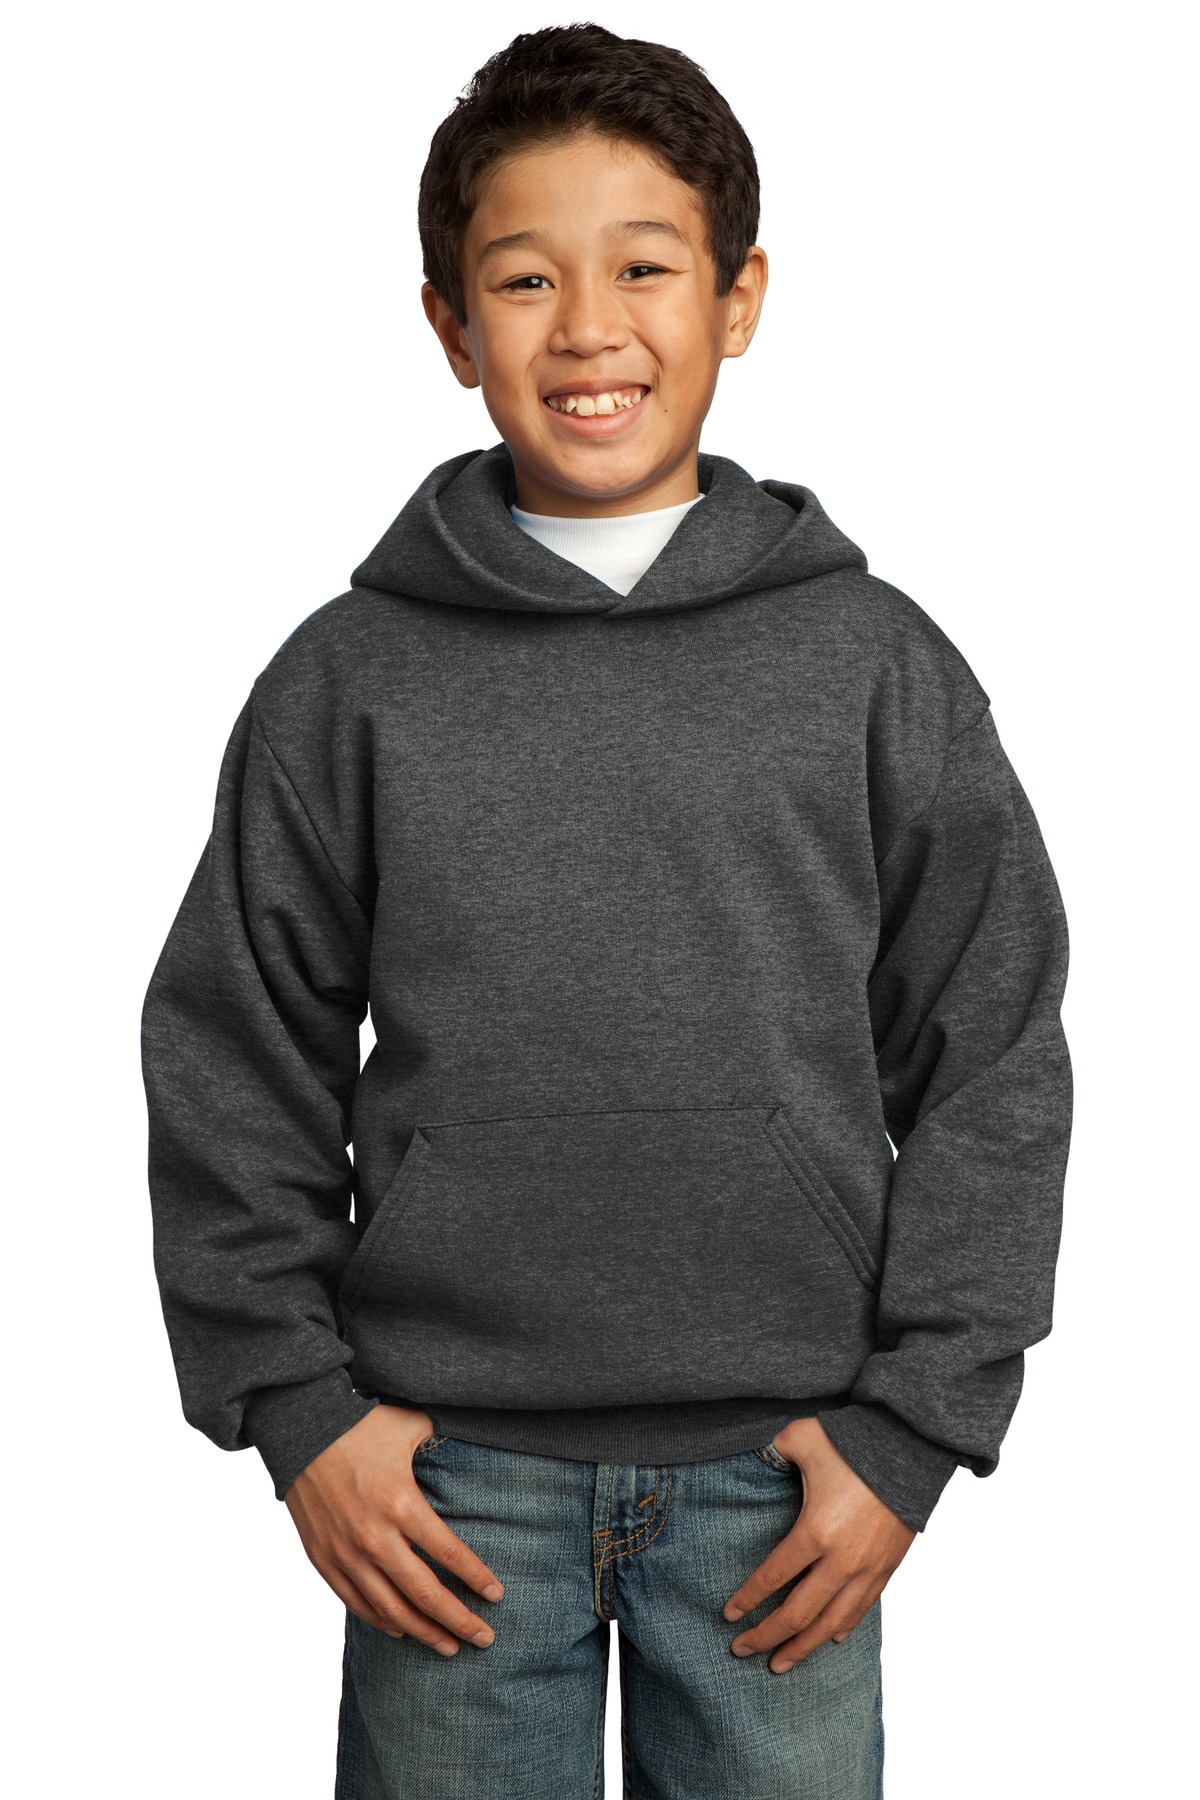 Port & Company ®  - Youth Core Fleece Pullover Hooded Sweatshirt.  PC90YH - Dark Heather Grey